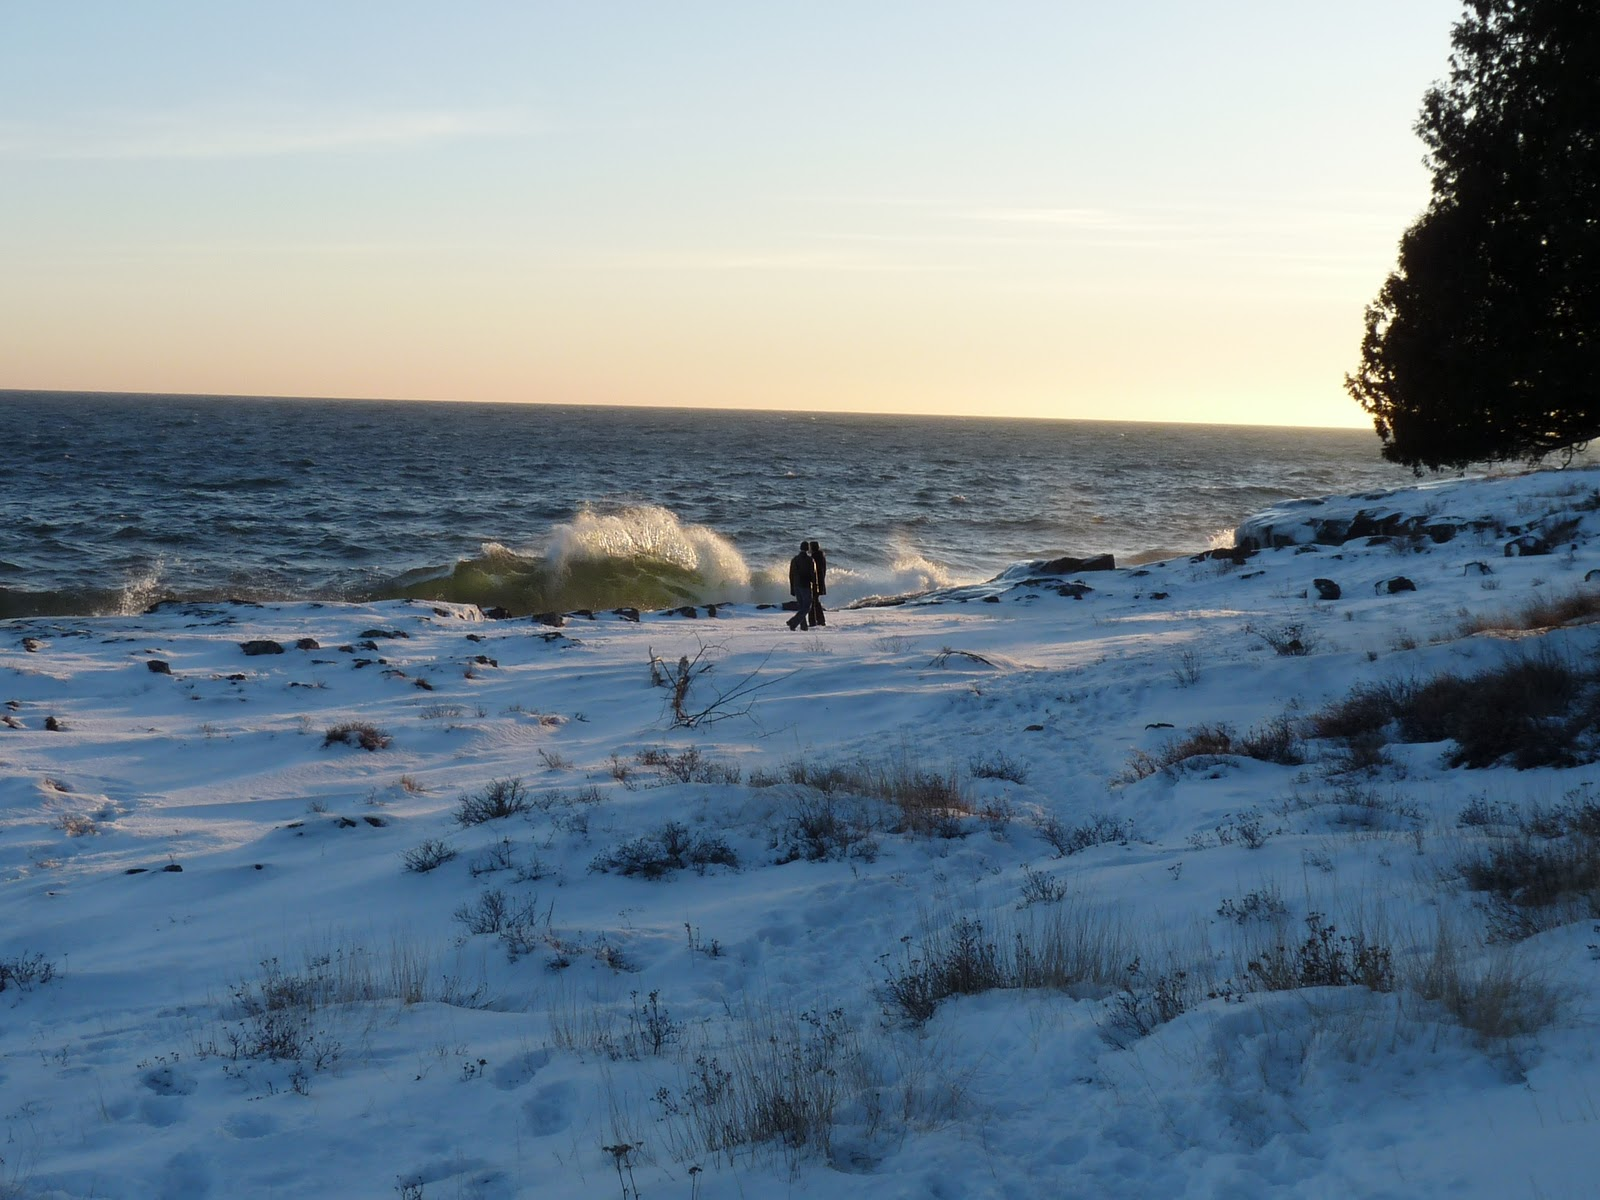 Review of surfside on lake superior tofte mn dans le for A le salon duluth mn